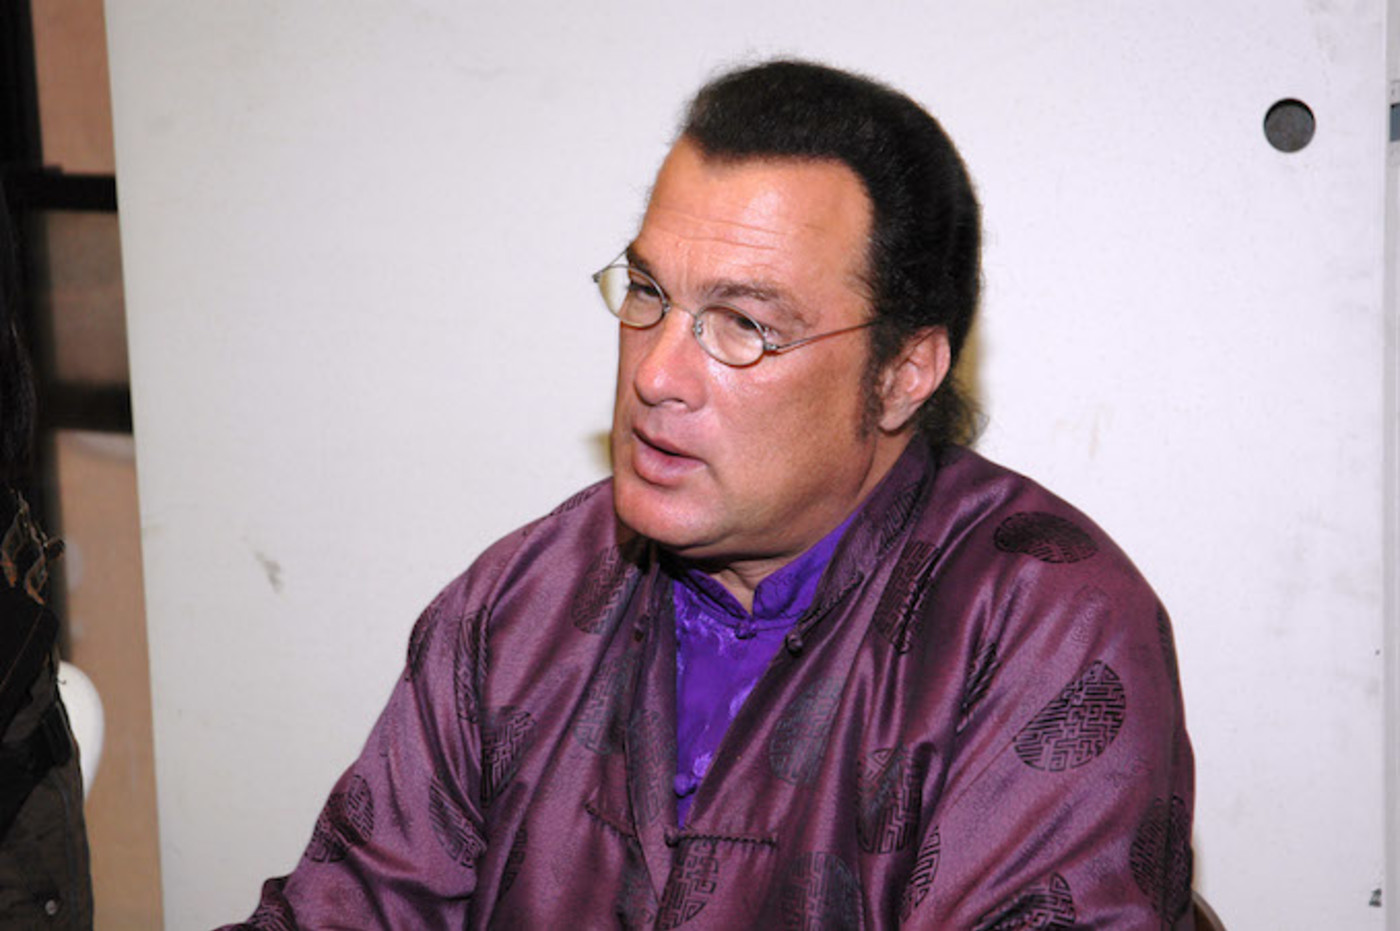 This is a picture of Steven Seagal.